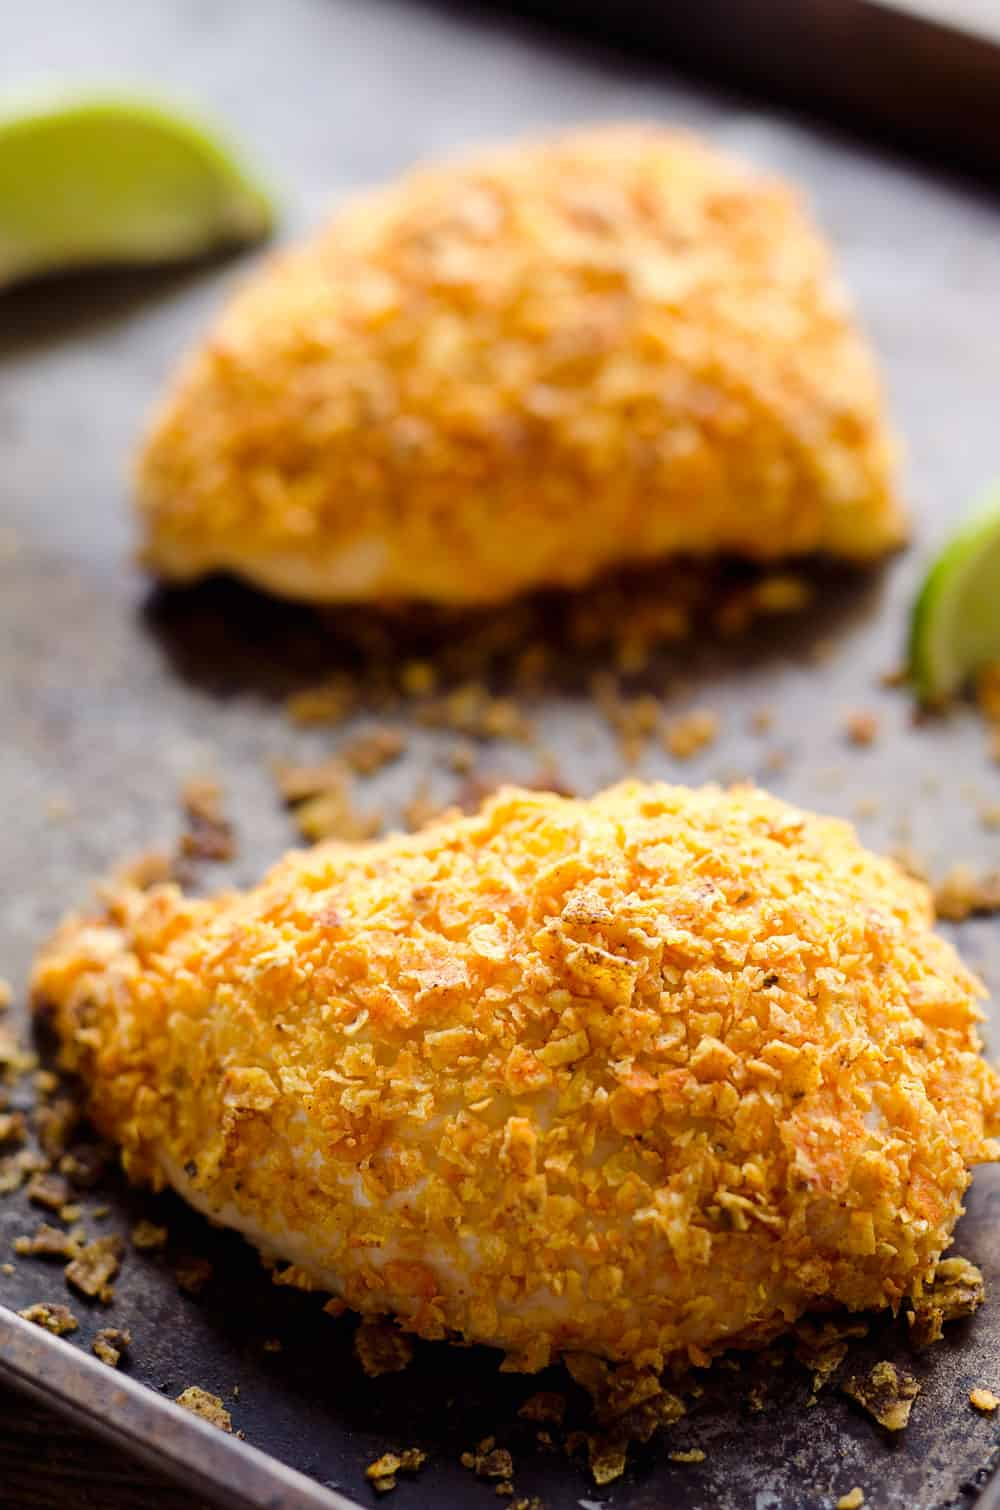 {3 Ingredient} Cheesy Dorito Chicken is a light and delicious dinner with tender chicken breasts stuffed with a creamy queso fresco cheese and coated in crunchy Dorito chips.